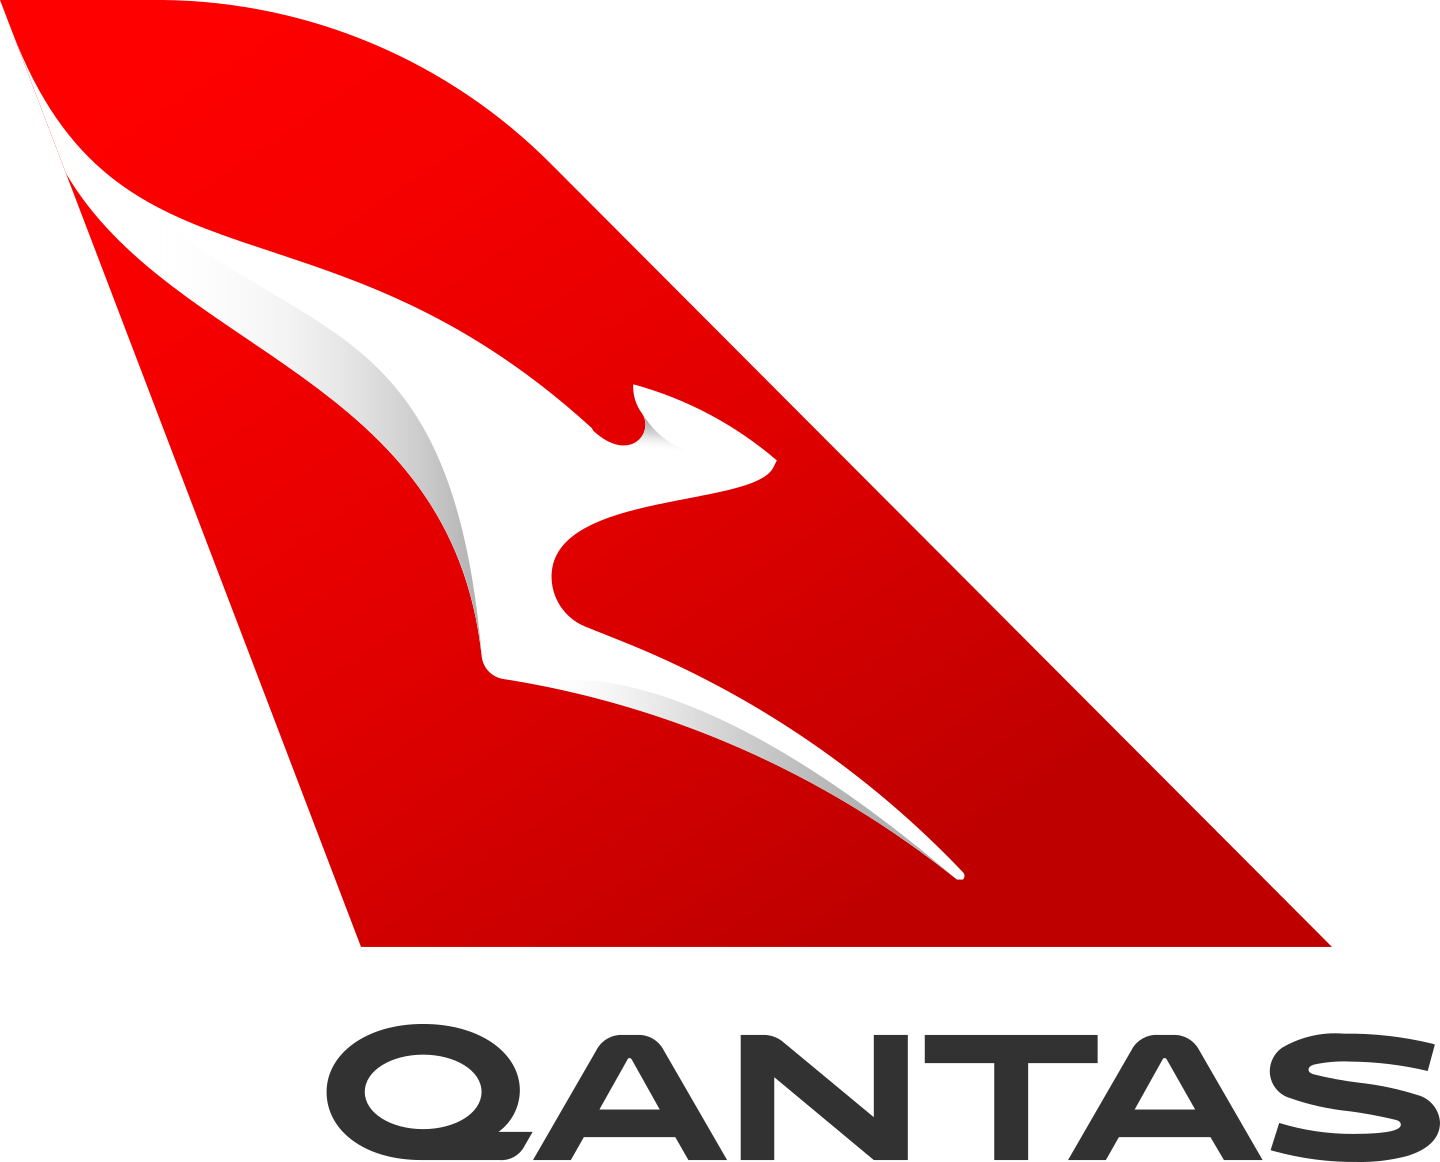 qantas airways logo 6 - Qantas Airways Logo